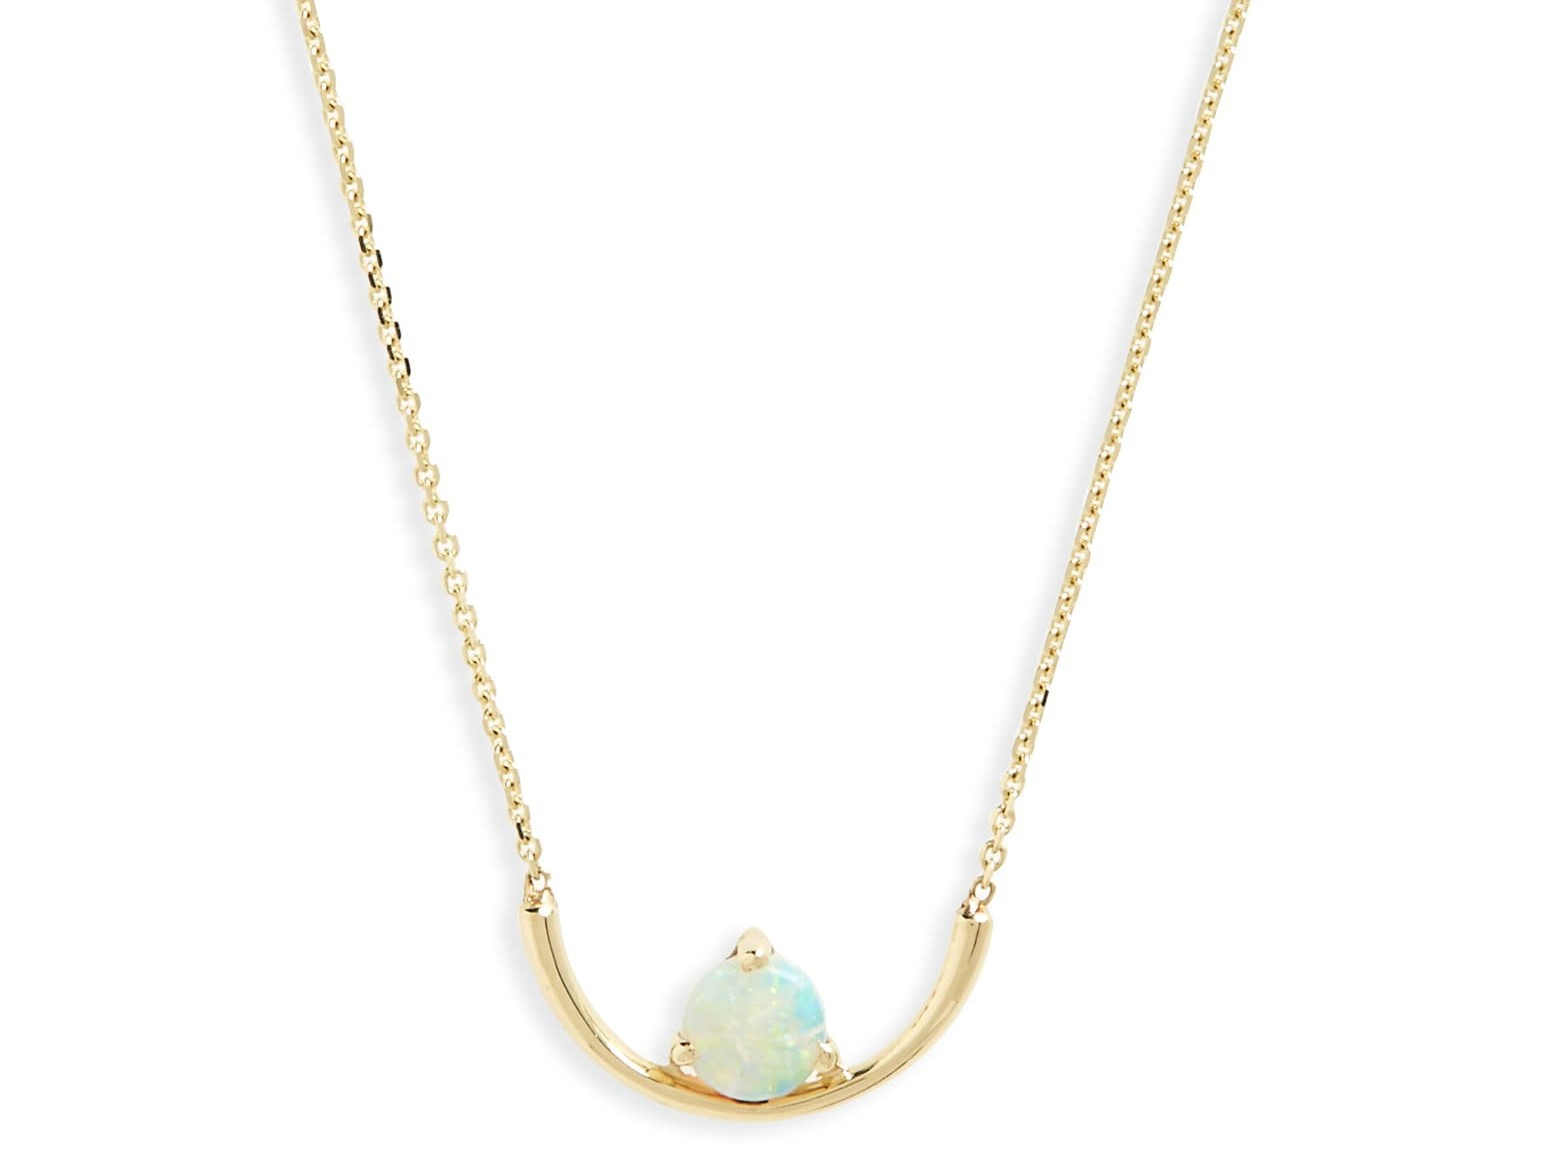 October birthstone: Opal